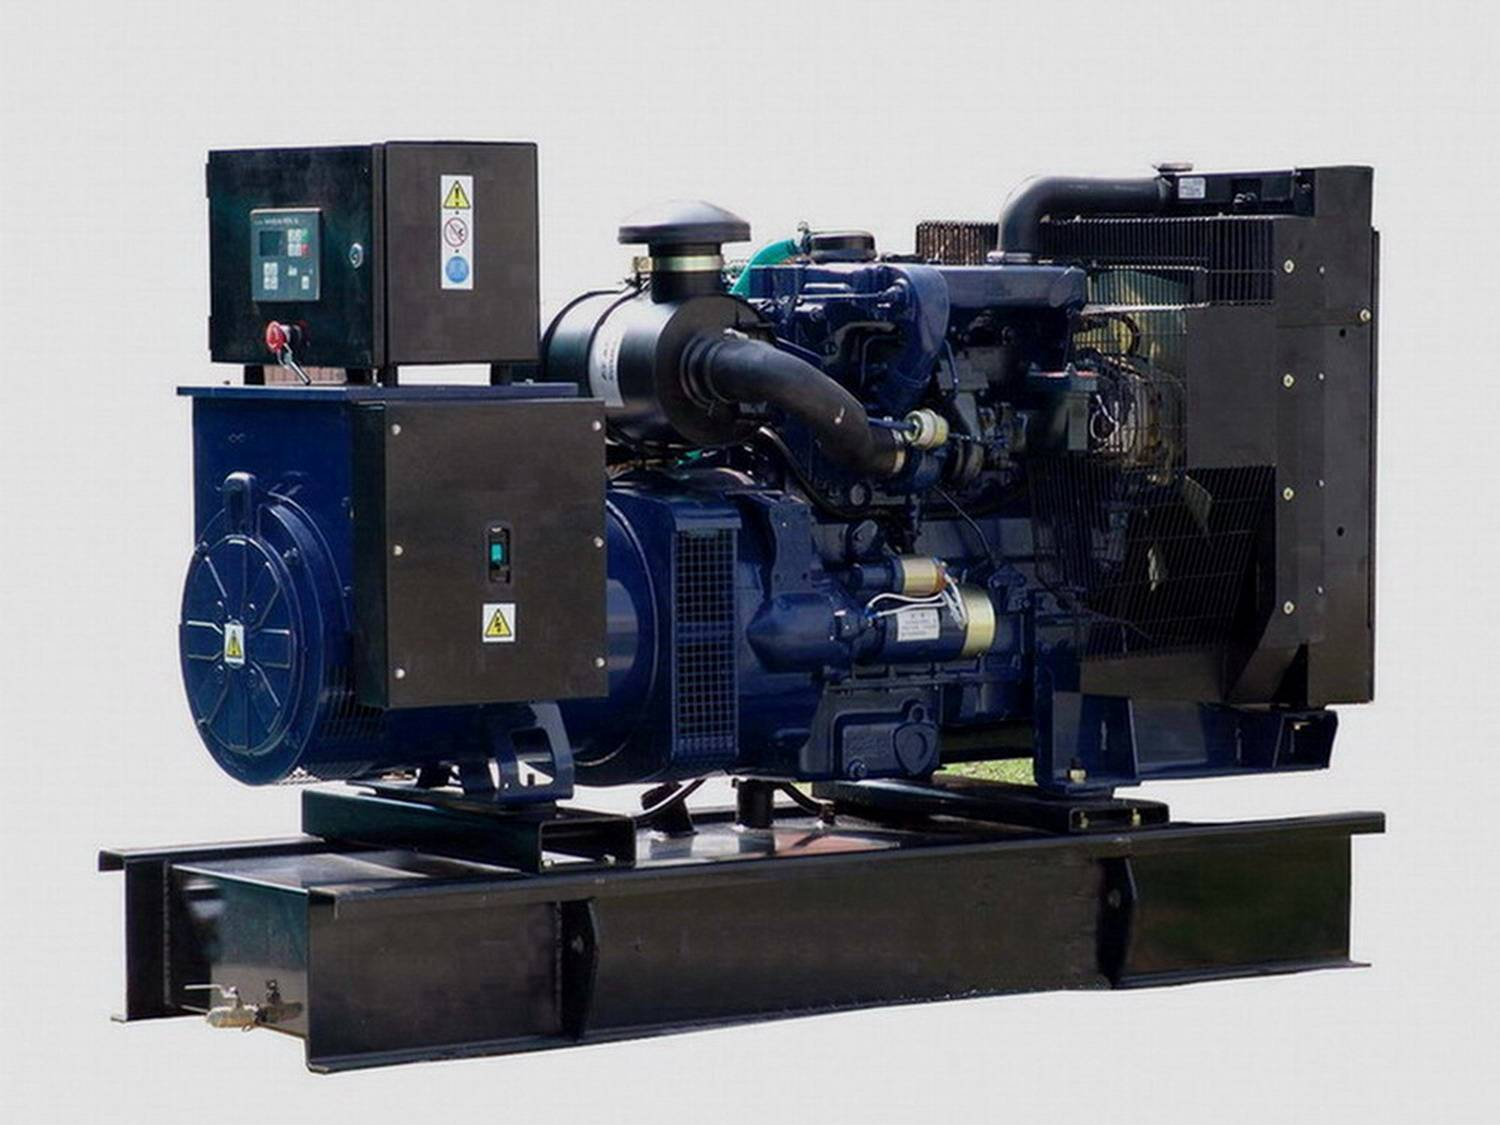 Perkins Diesel Engine Industrial Generator Set With Stamford 12kW On Hot Sale